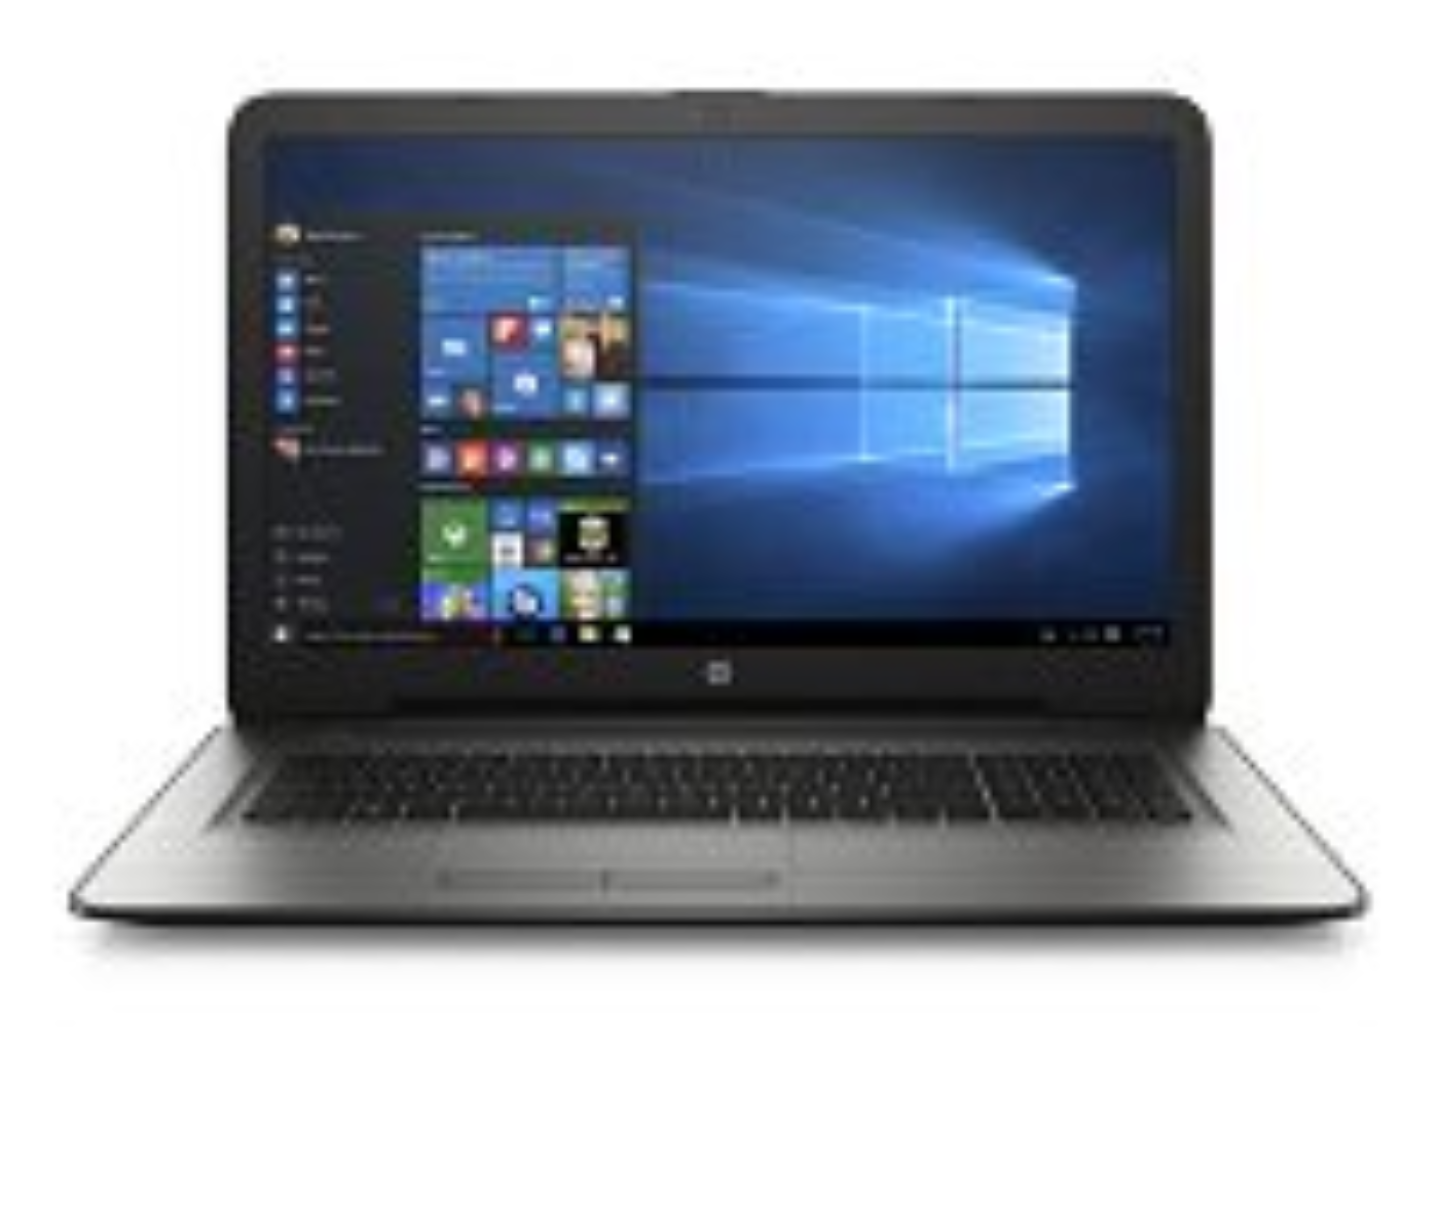 "HP 17-x003nc/Intel i3-5005U/8GB/1 TB HDD/AMD Radeon R5 M430, 2GB/17,3"" HD+/Win 10/stříbrná"